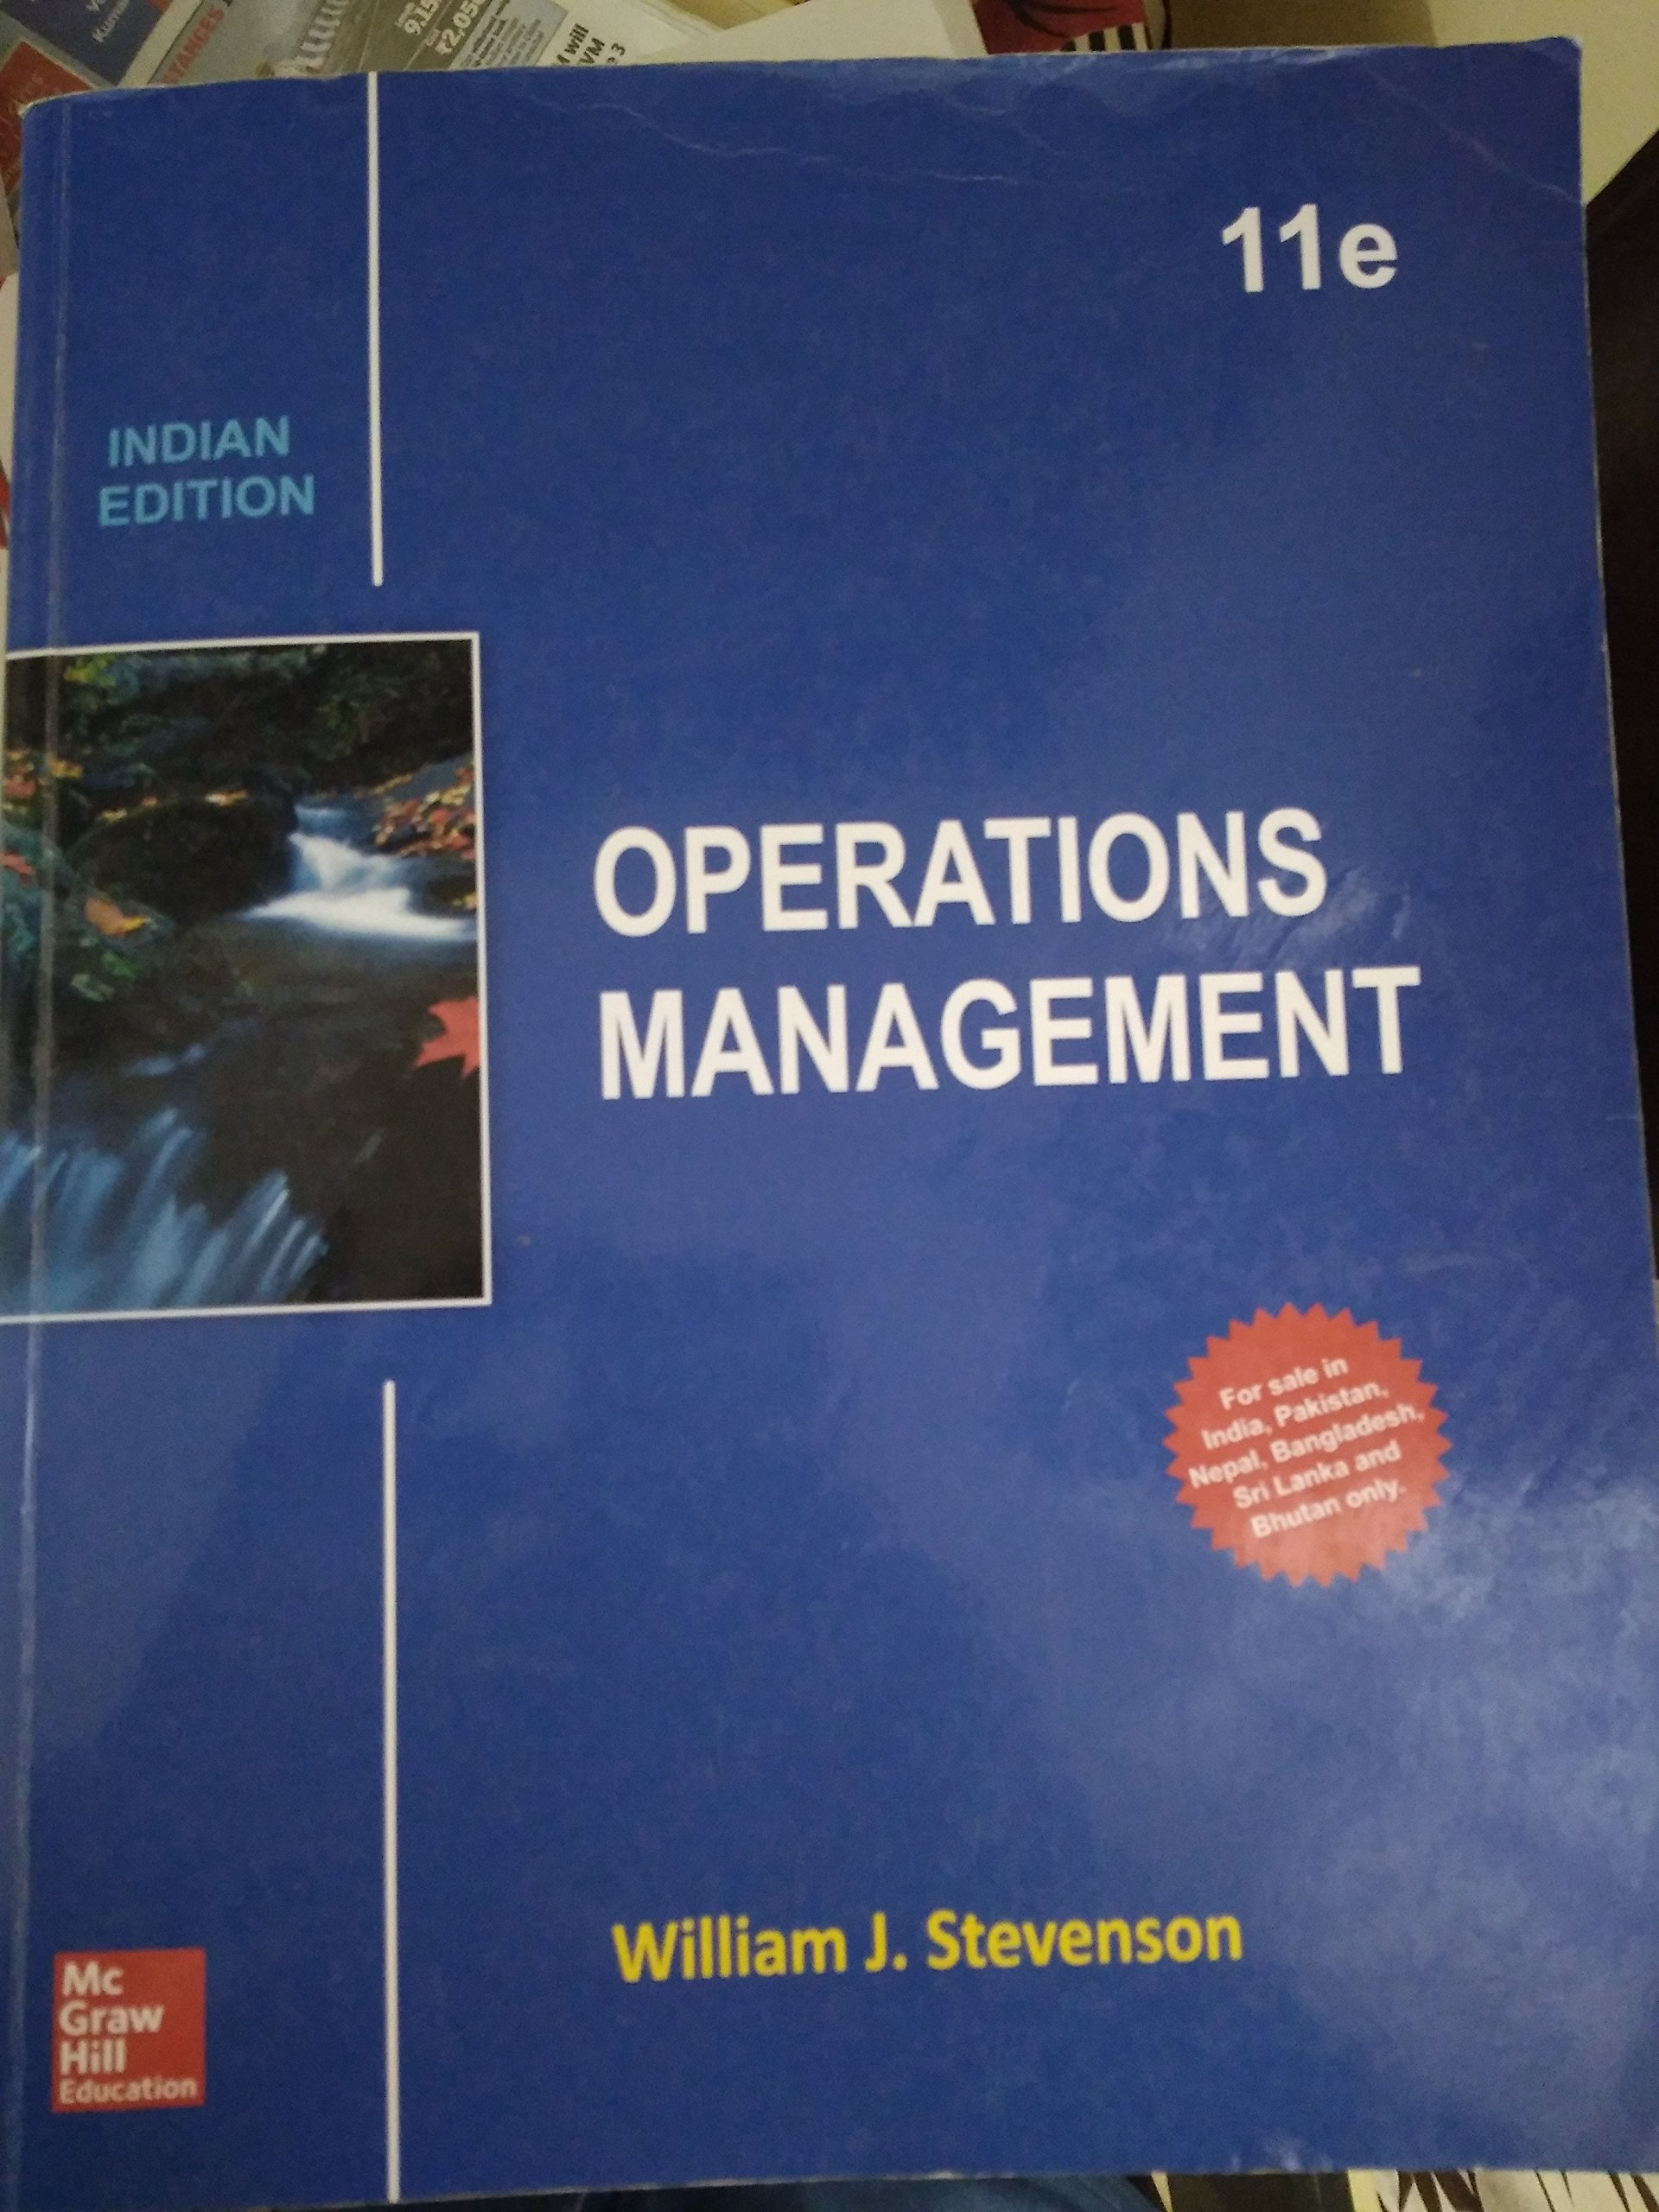 Buy operations management book online at low prices in india buy operations management book online at low prices in india operations management reviews ratings amazon fandeluxe Images